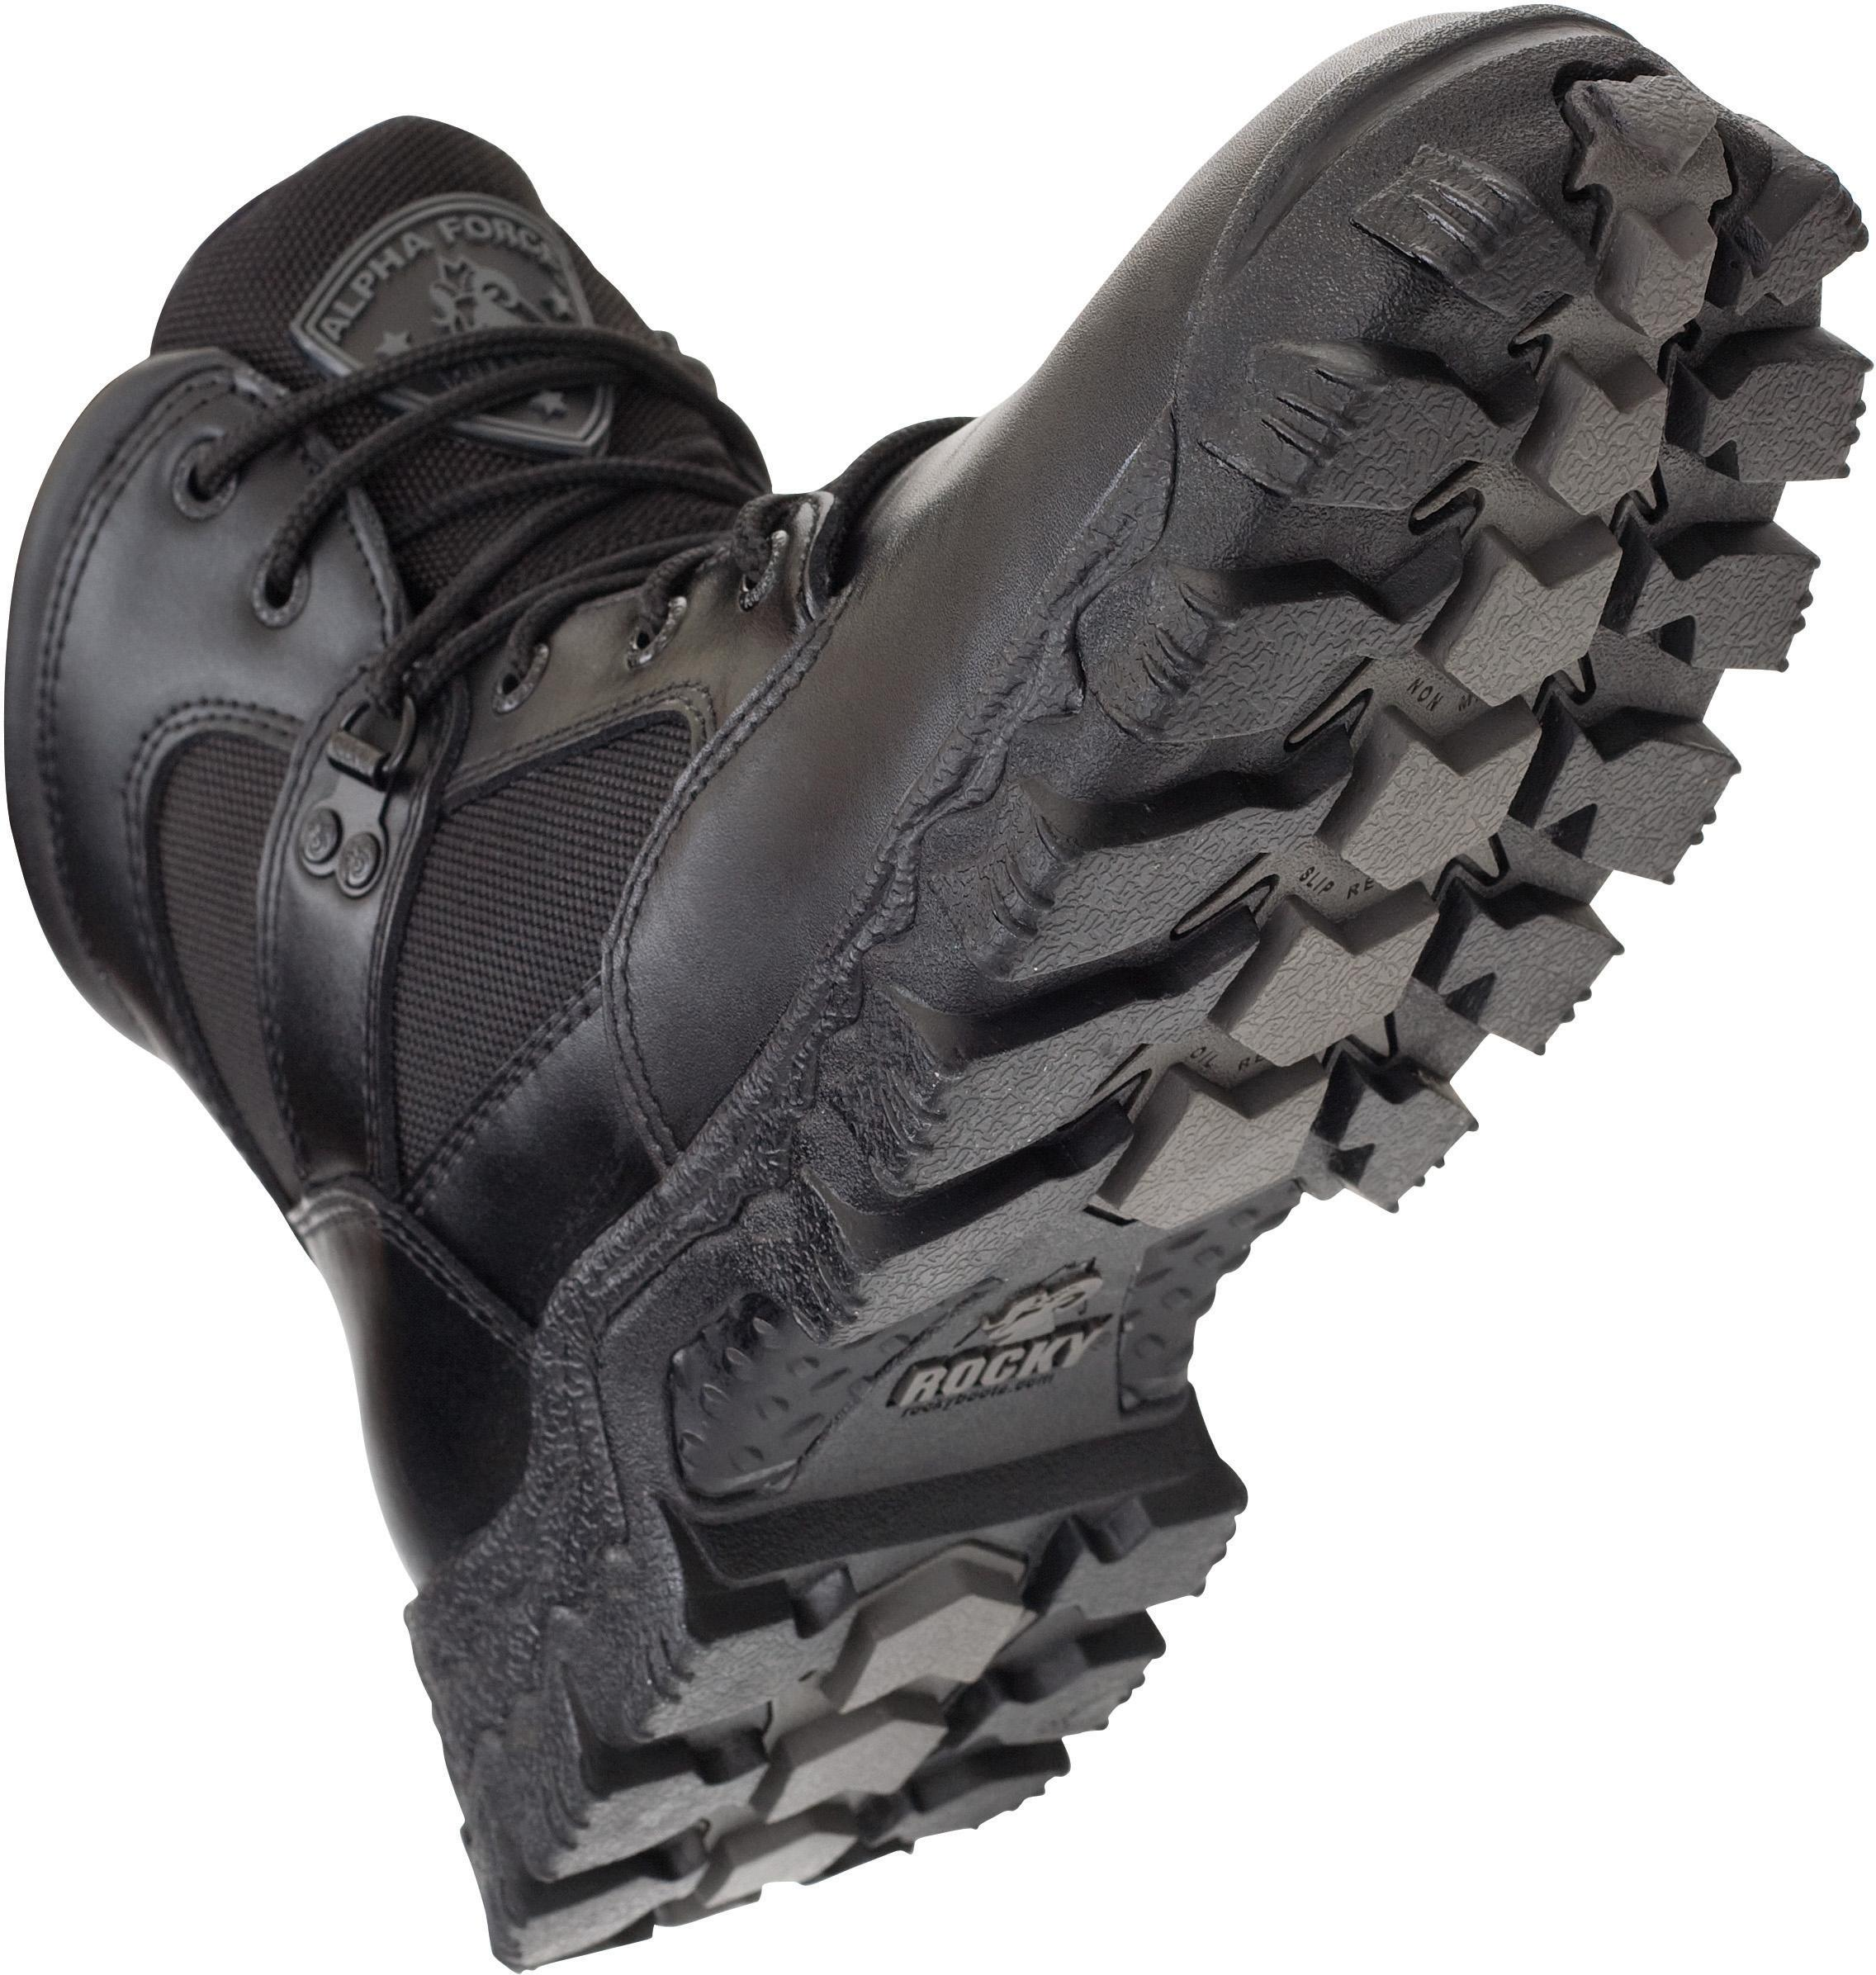 5b32f1b4ada Rocky Alpha Force Waterproof Public Service Boot